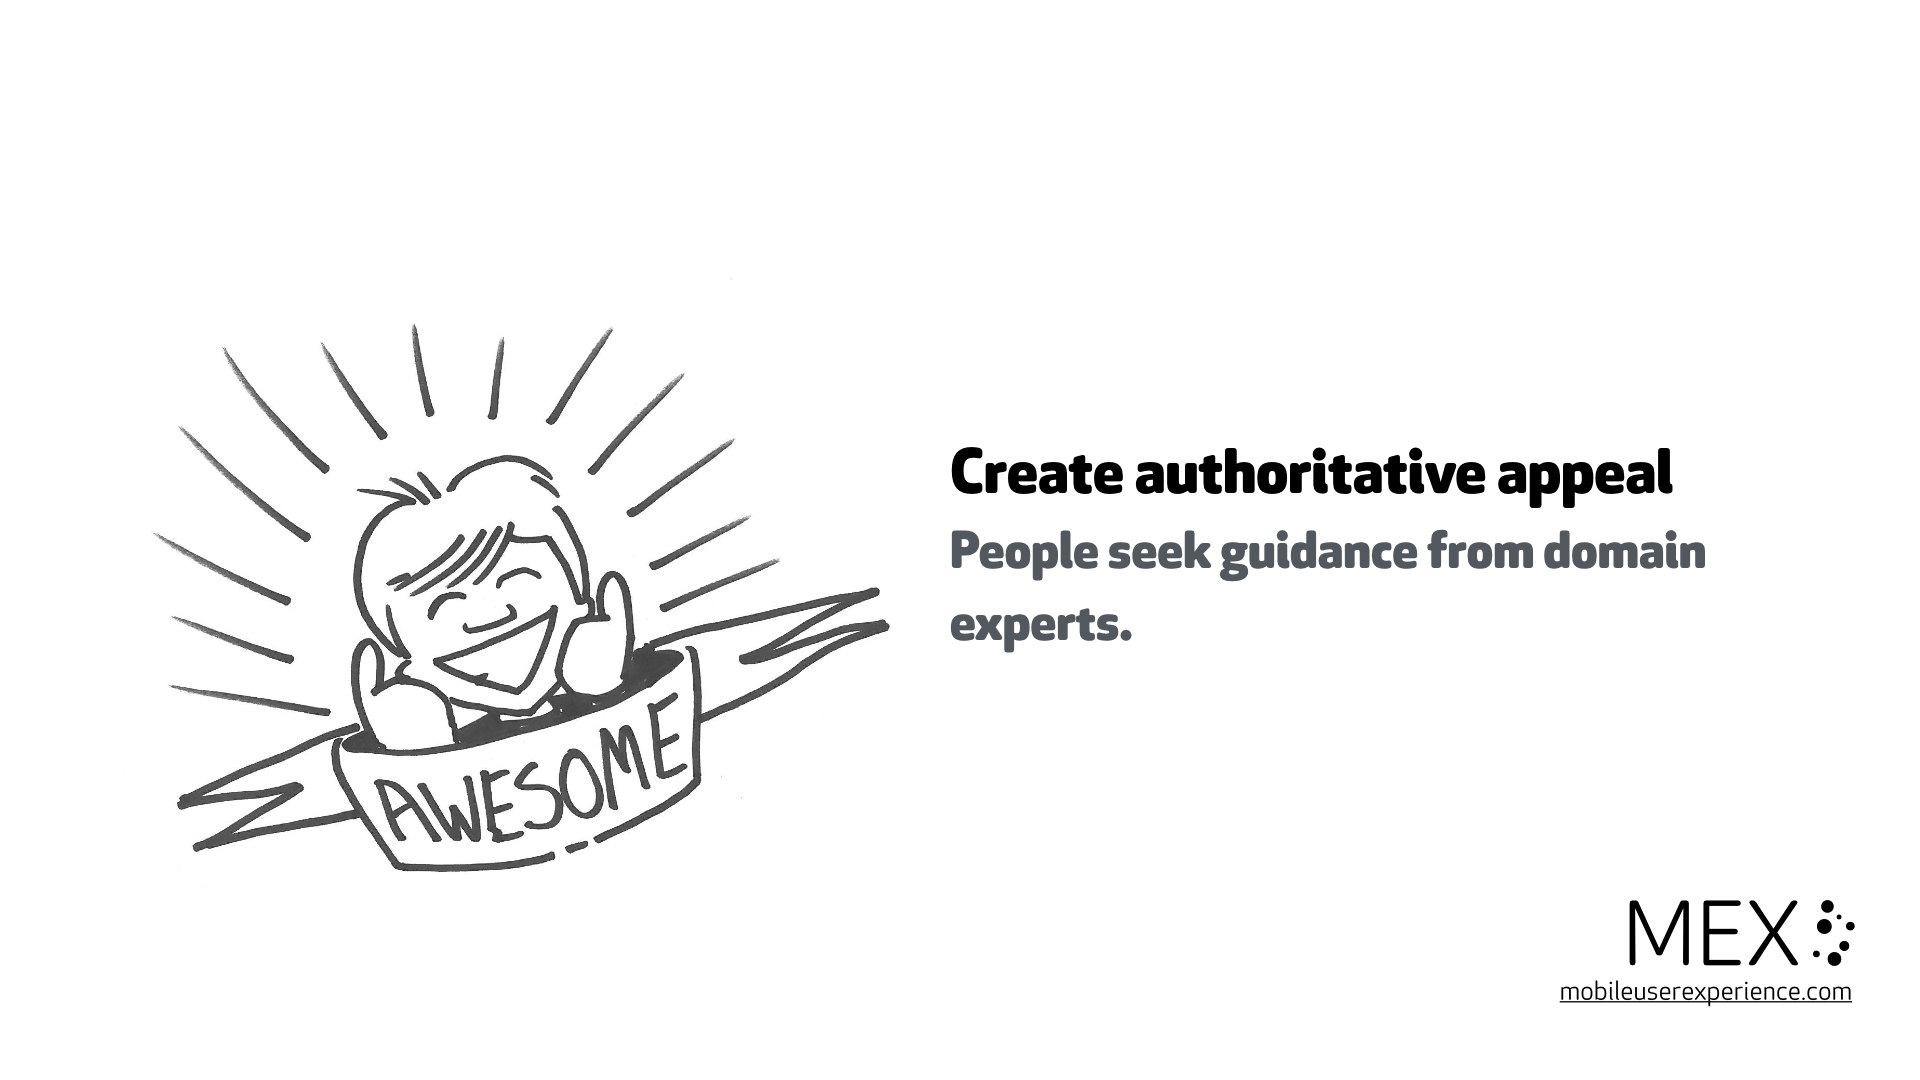 Create authoritative appeal People seek guidance from domain experts.